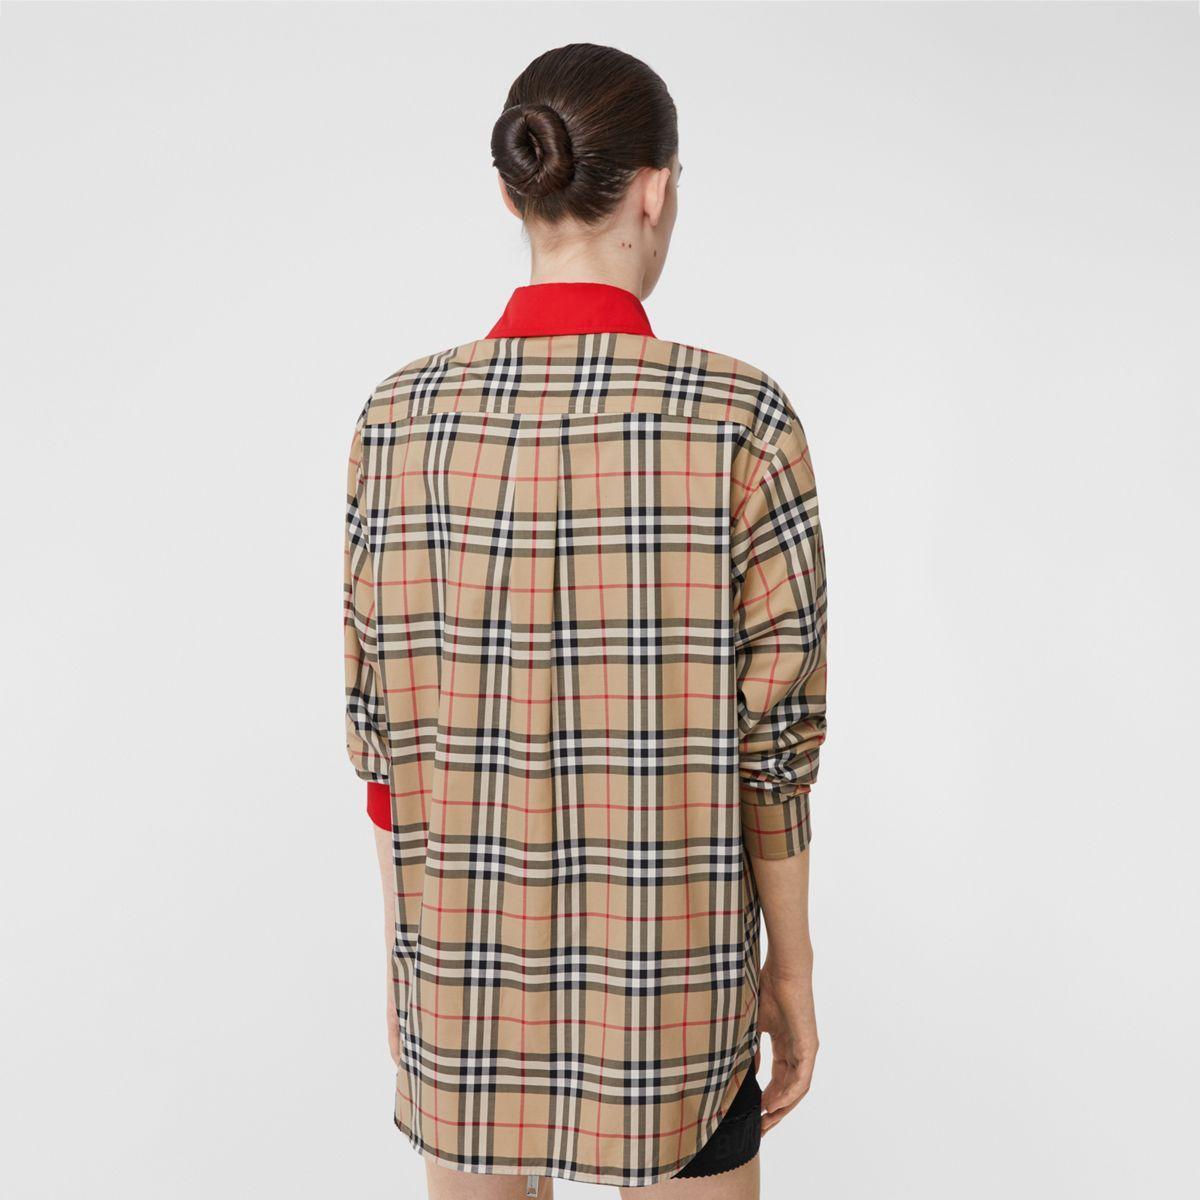 Contrast Trim Vintage Check Stretch Cotton Shirt Burberry